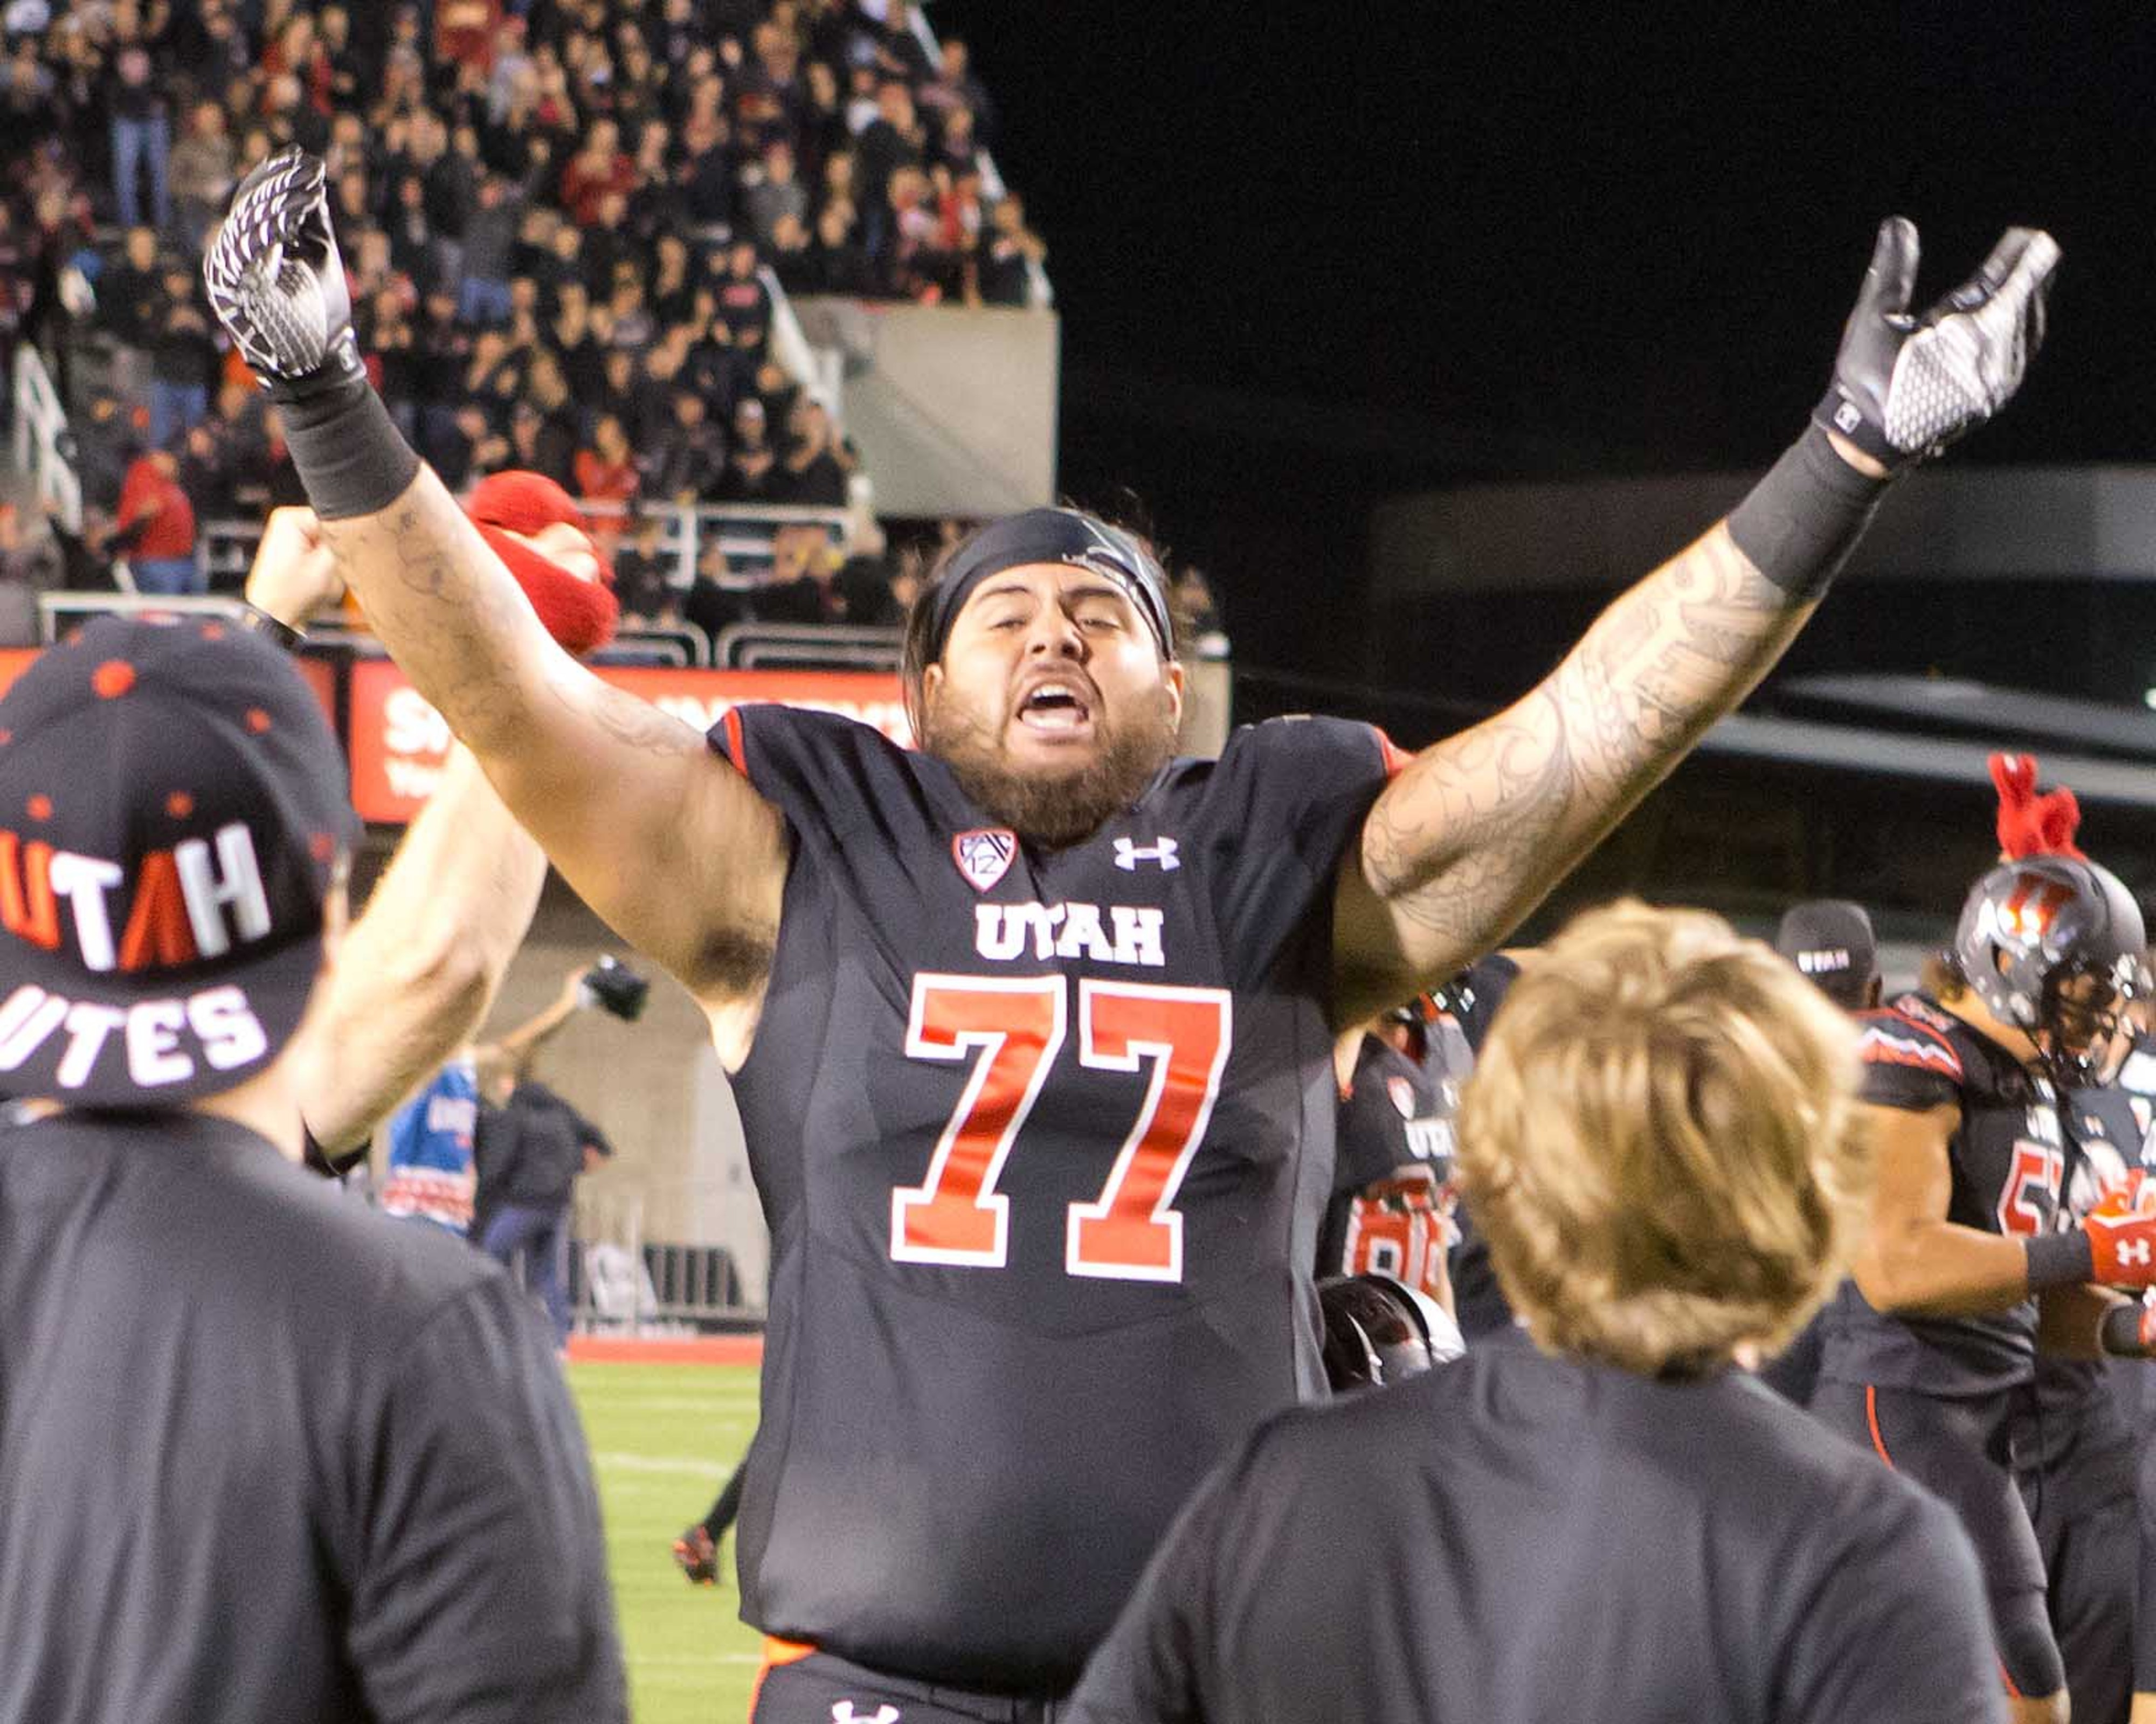 Offensive lineman Mark Pouvave celebrates Utah's rise in the polls after beating USC 24-21.